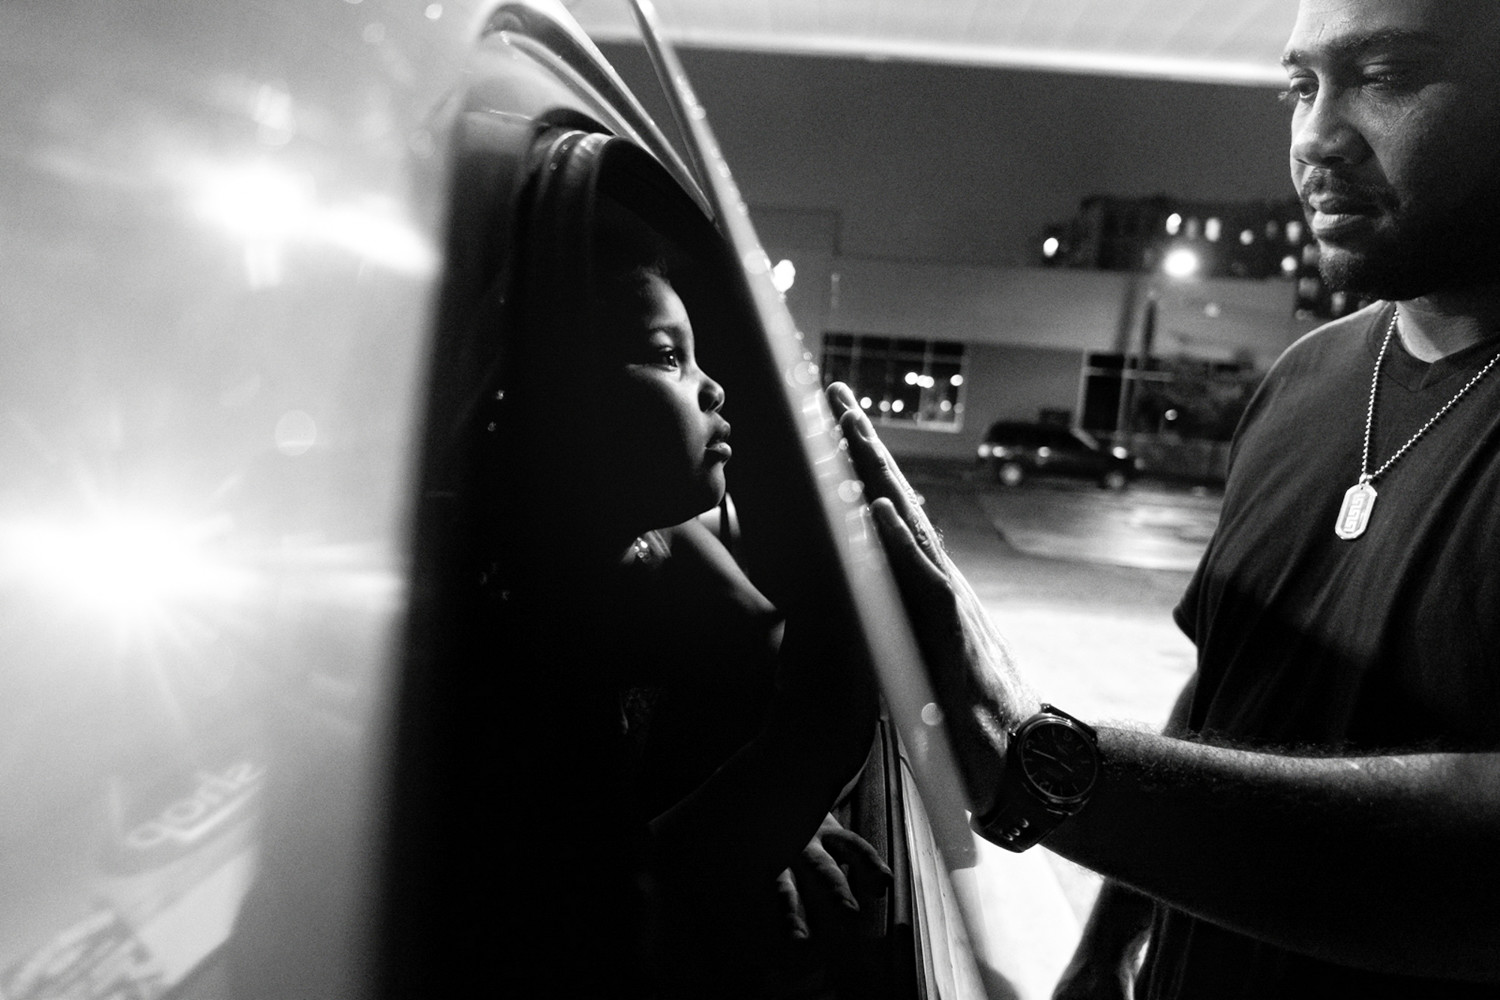 Billy Garcia and his daughter Esmeralda enjoy a tender moment at a gas station in the Bronx in 2012. Zun Lee's exhibition 'Father Figure: Exploring Alternate Notions of Black Fatherhood' is on display at the Bronx Documentary Center until March 31.